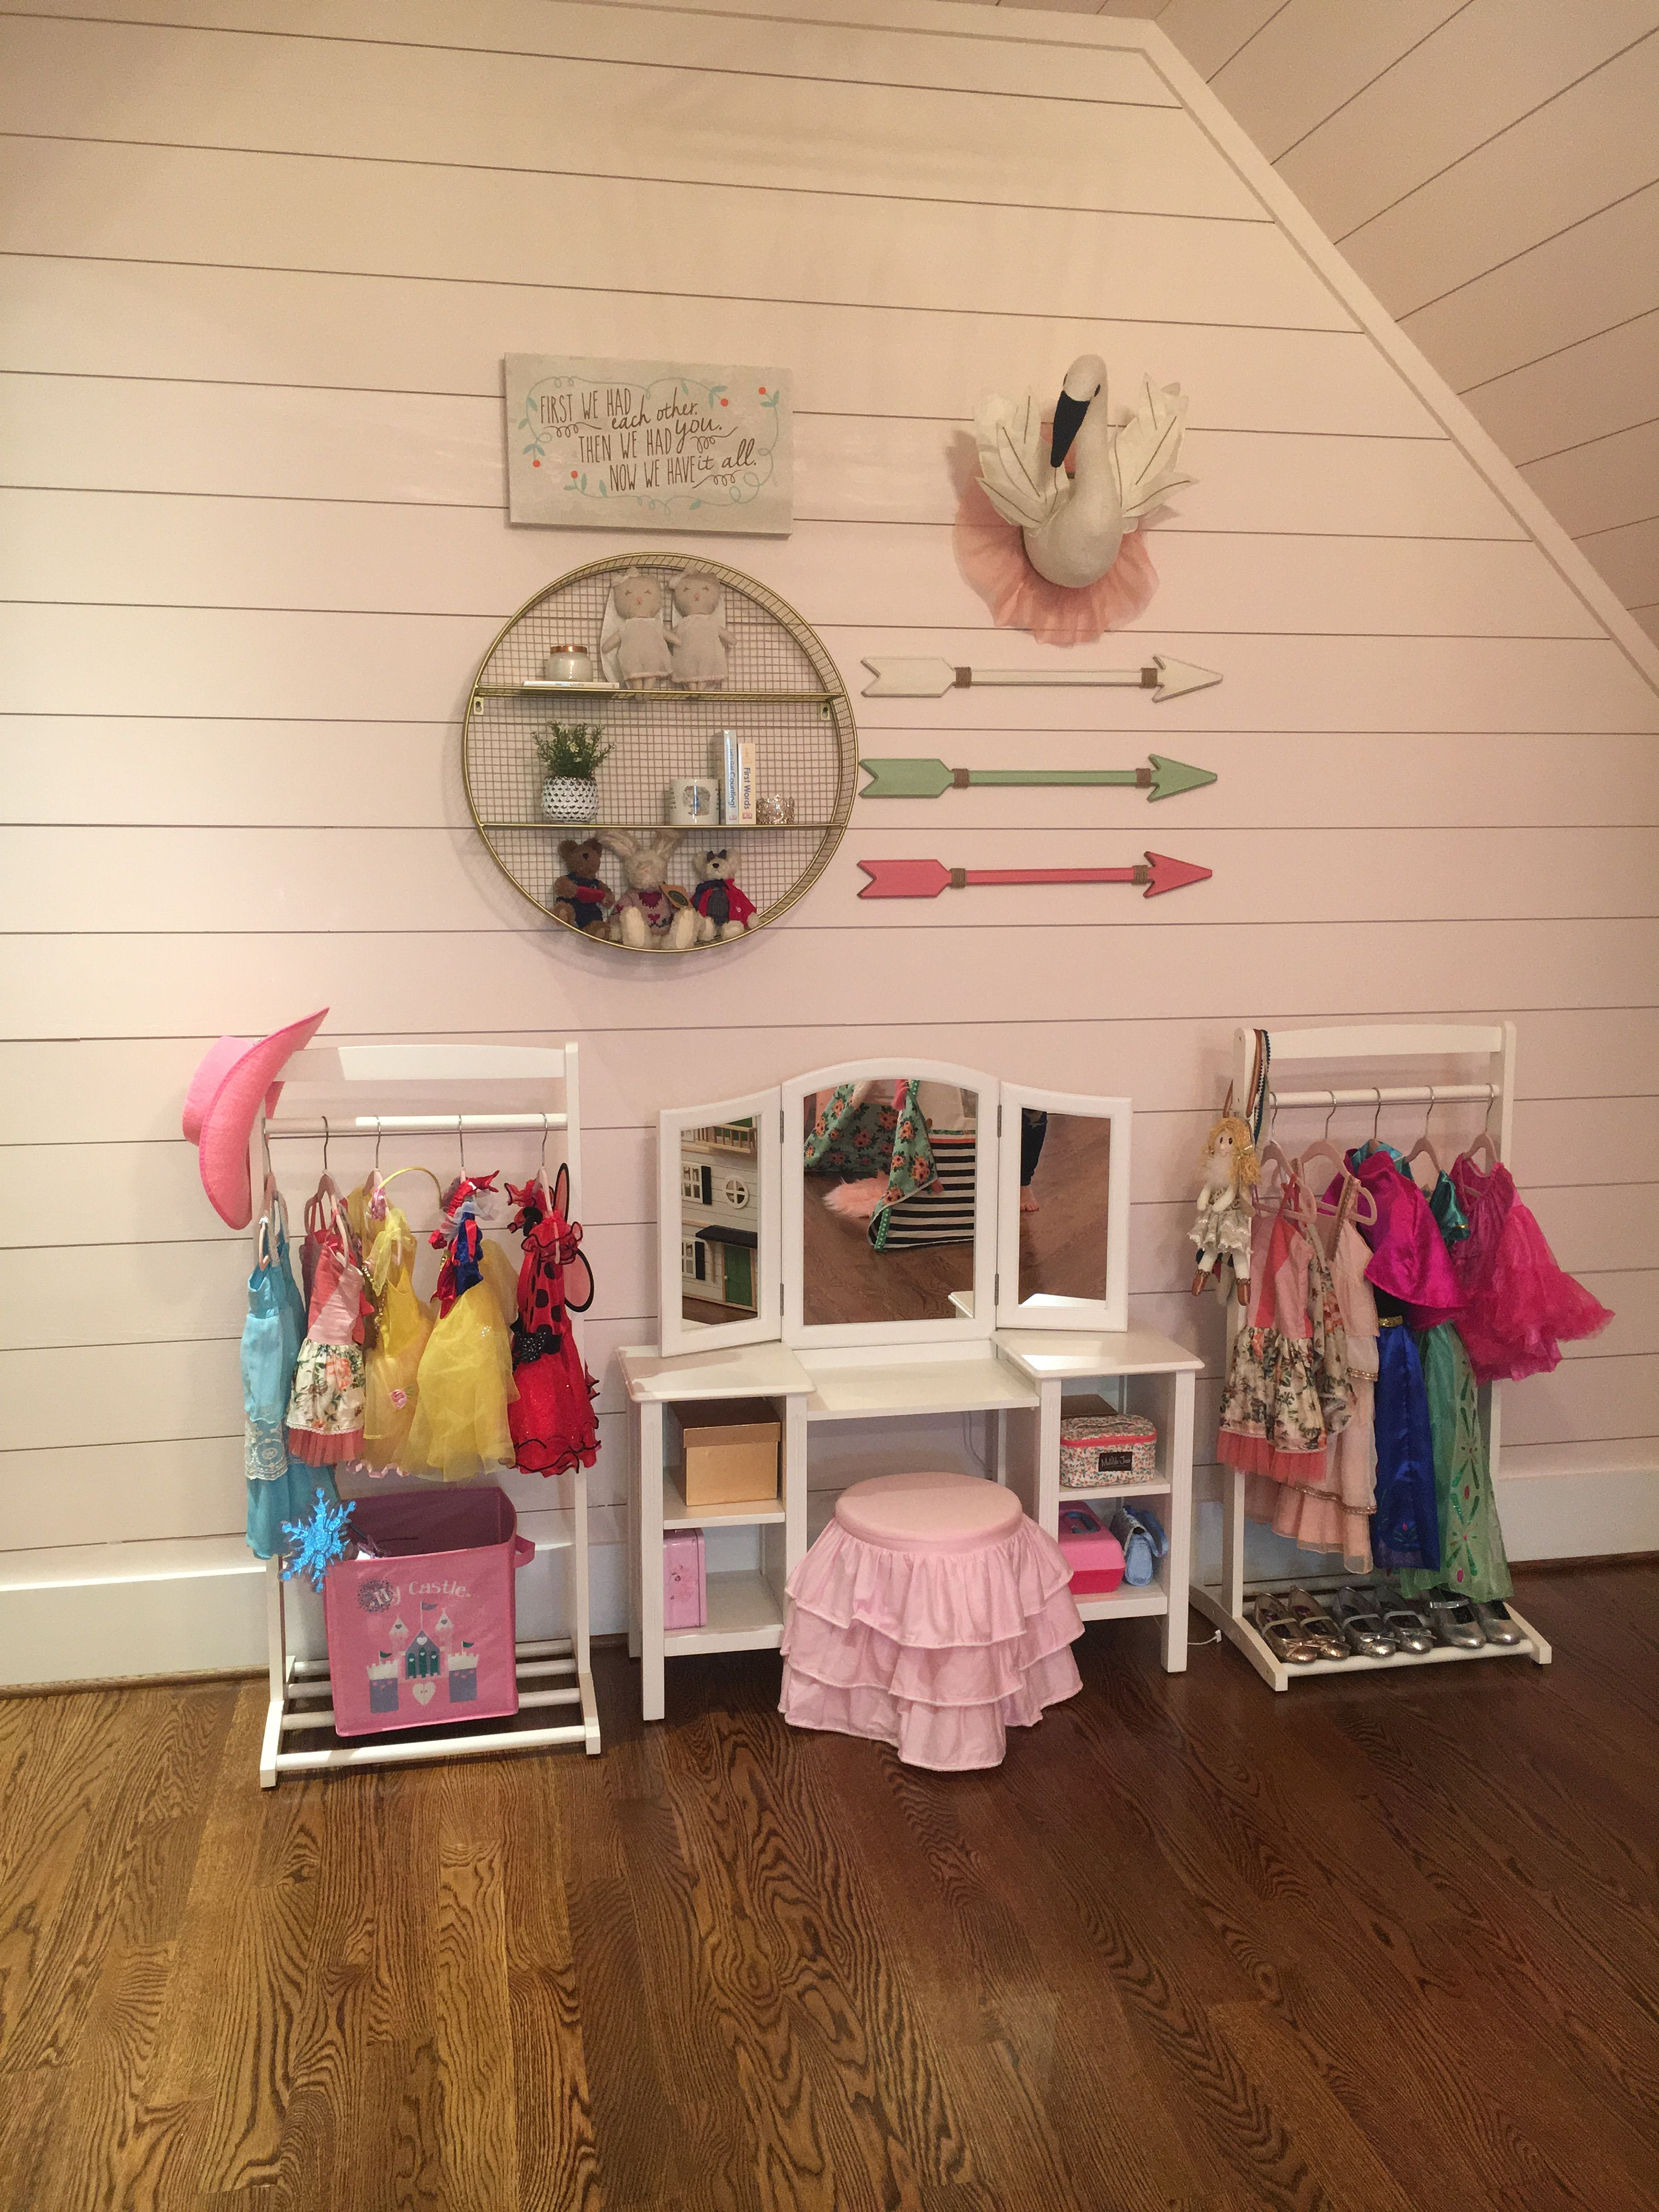 Vanity And Dress Up Area | Basement Ideas In 2019 | Playroom, Dress